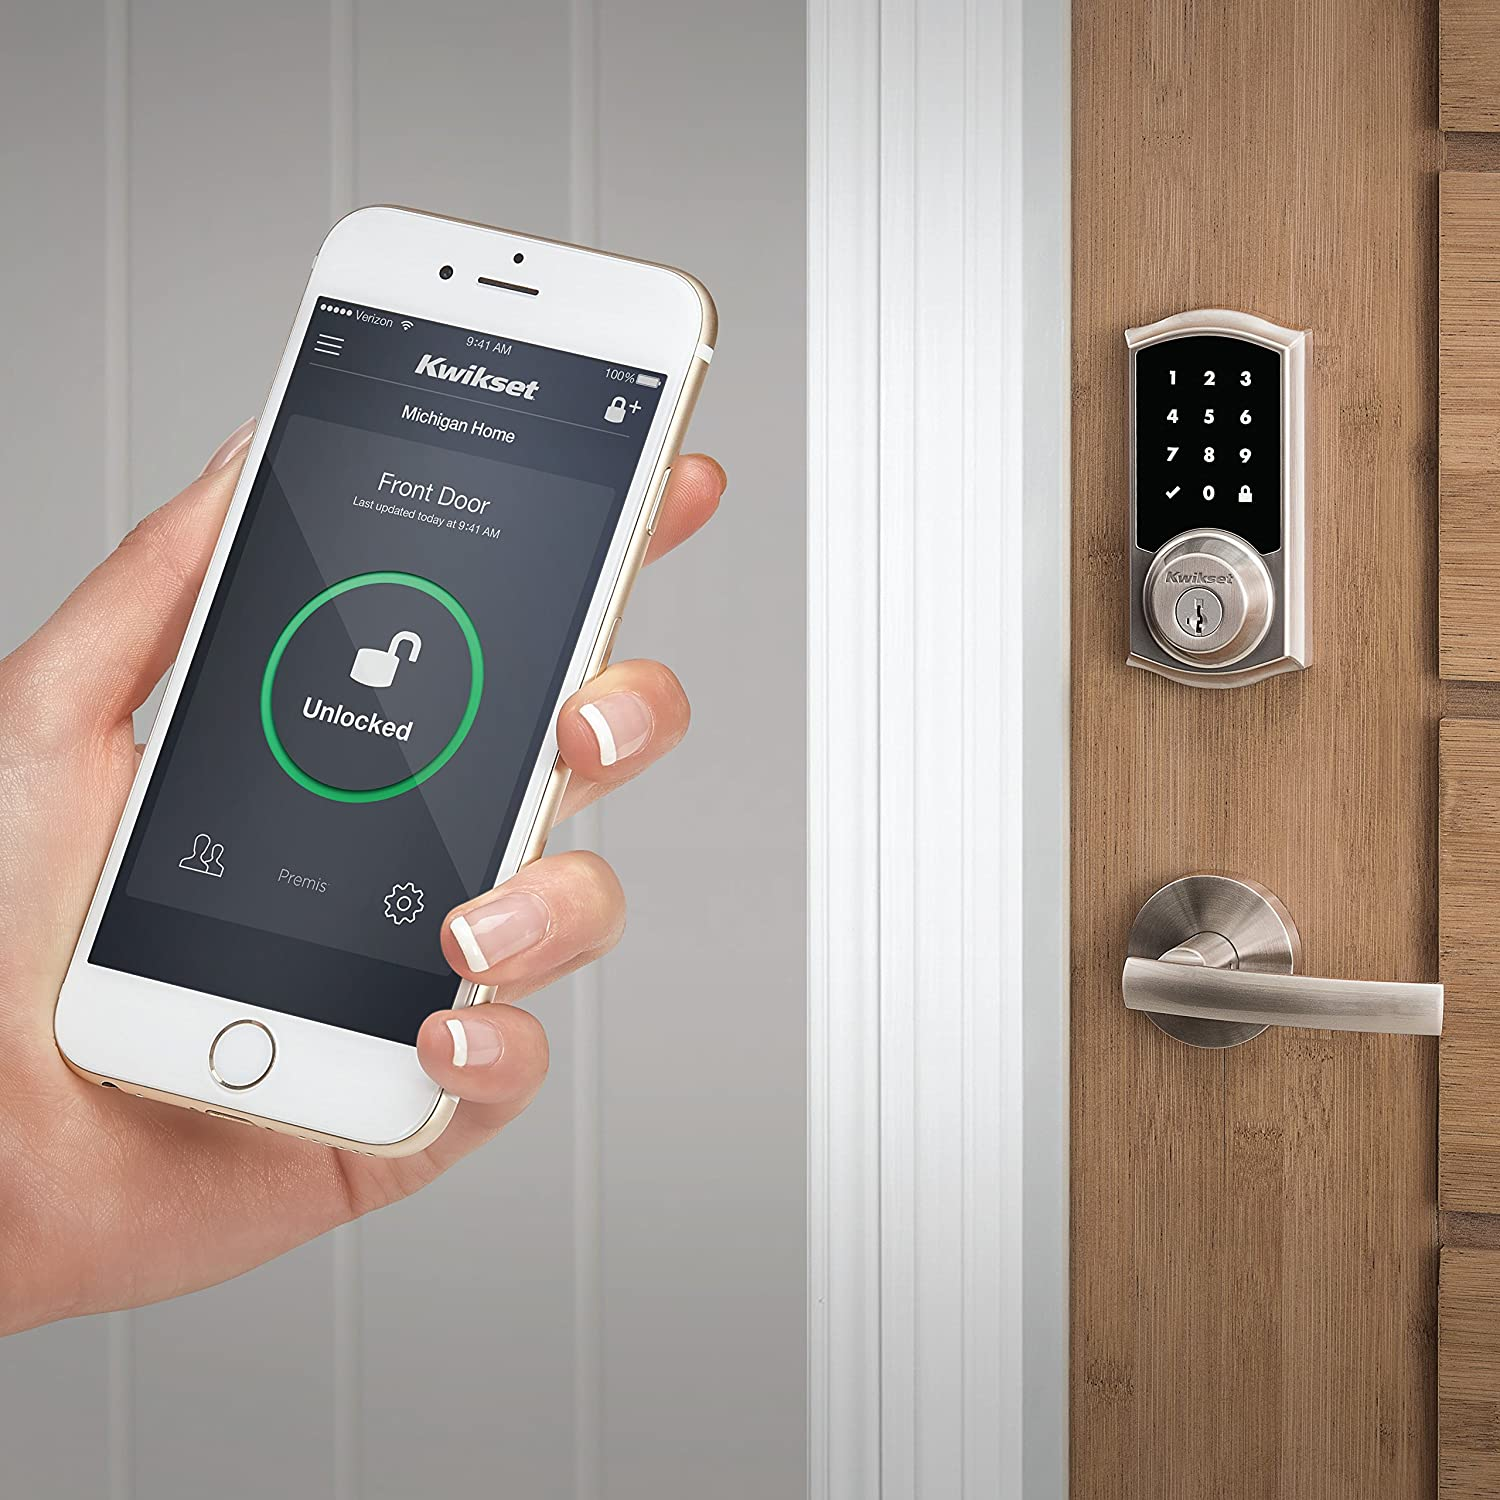 Kwikset Premis smart lock